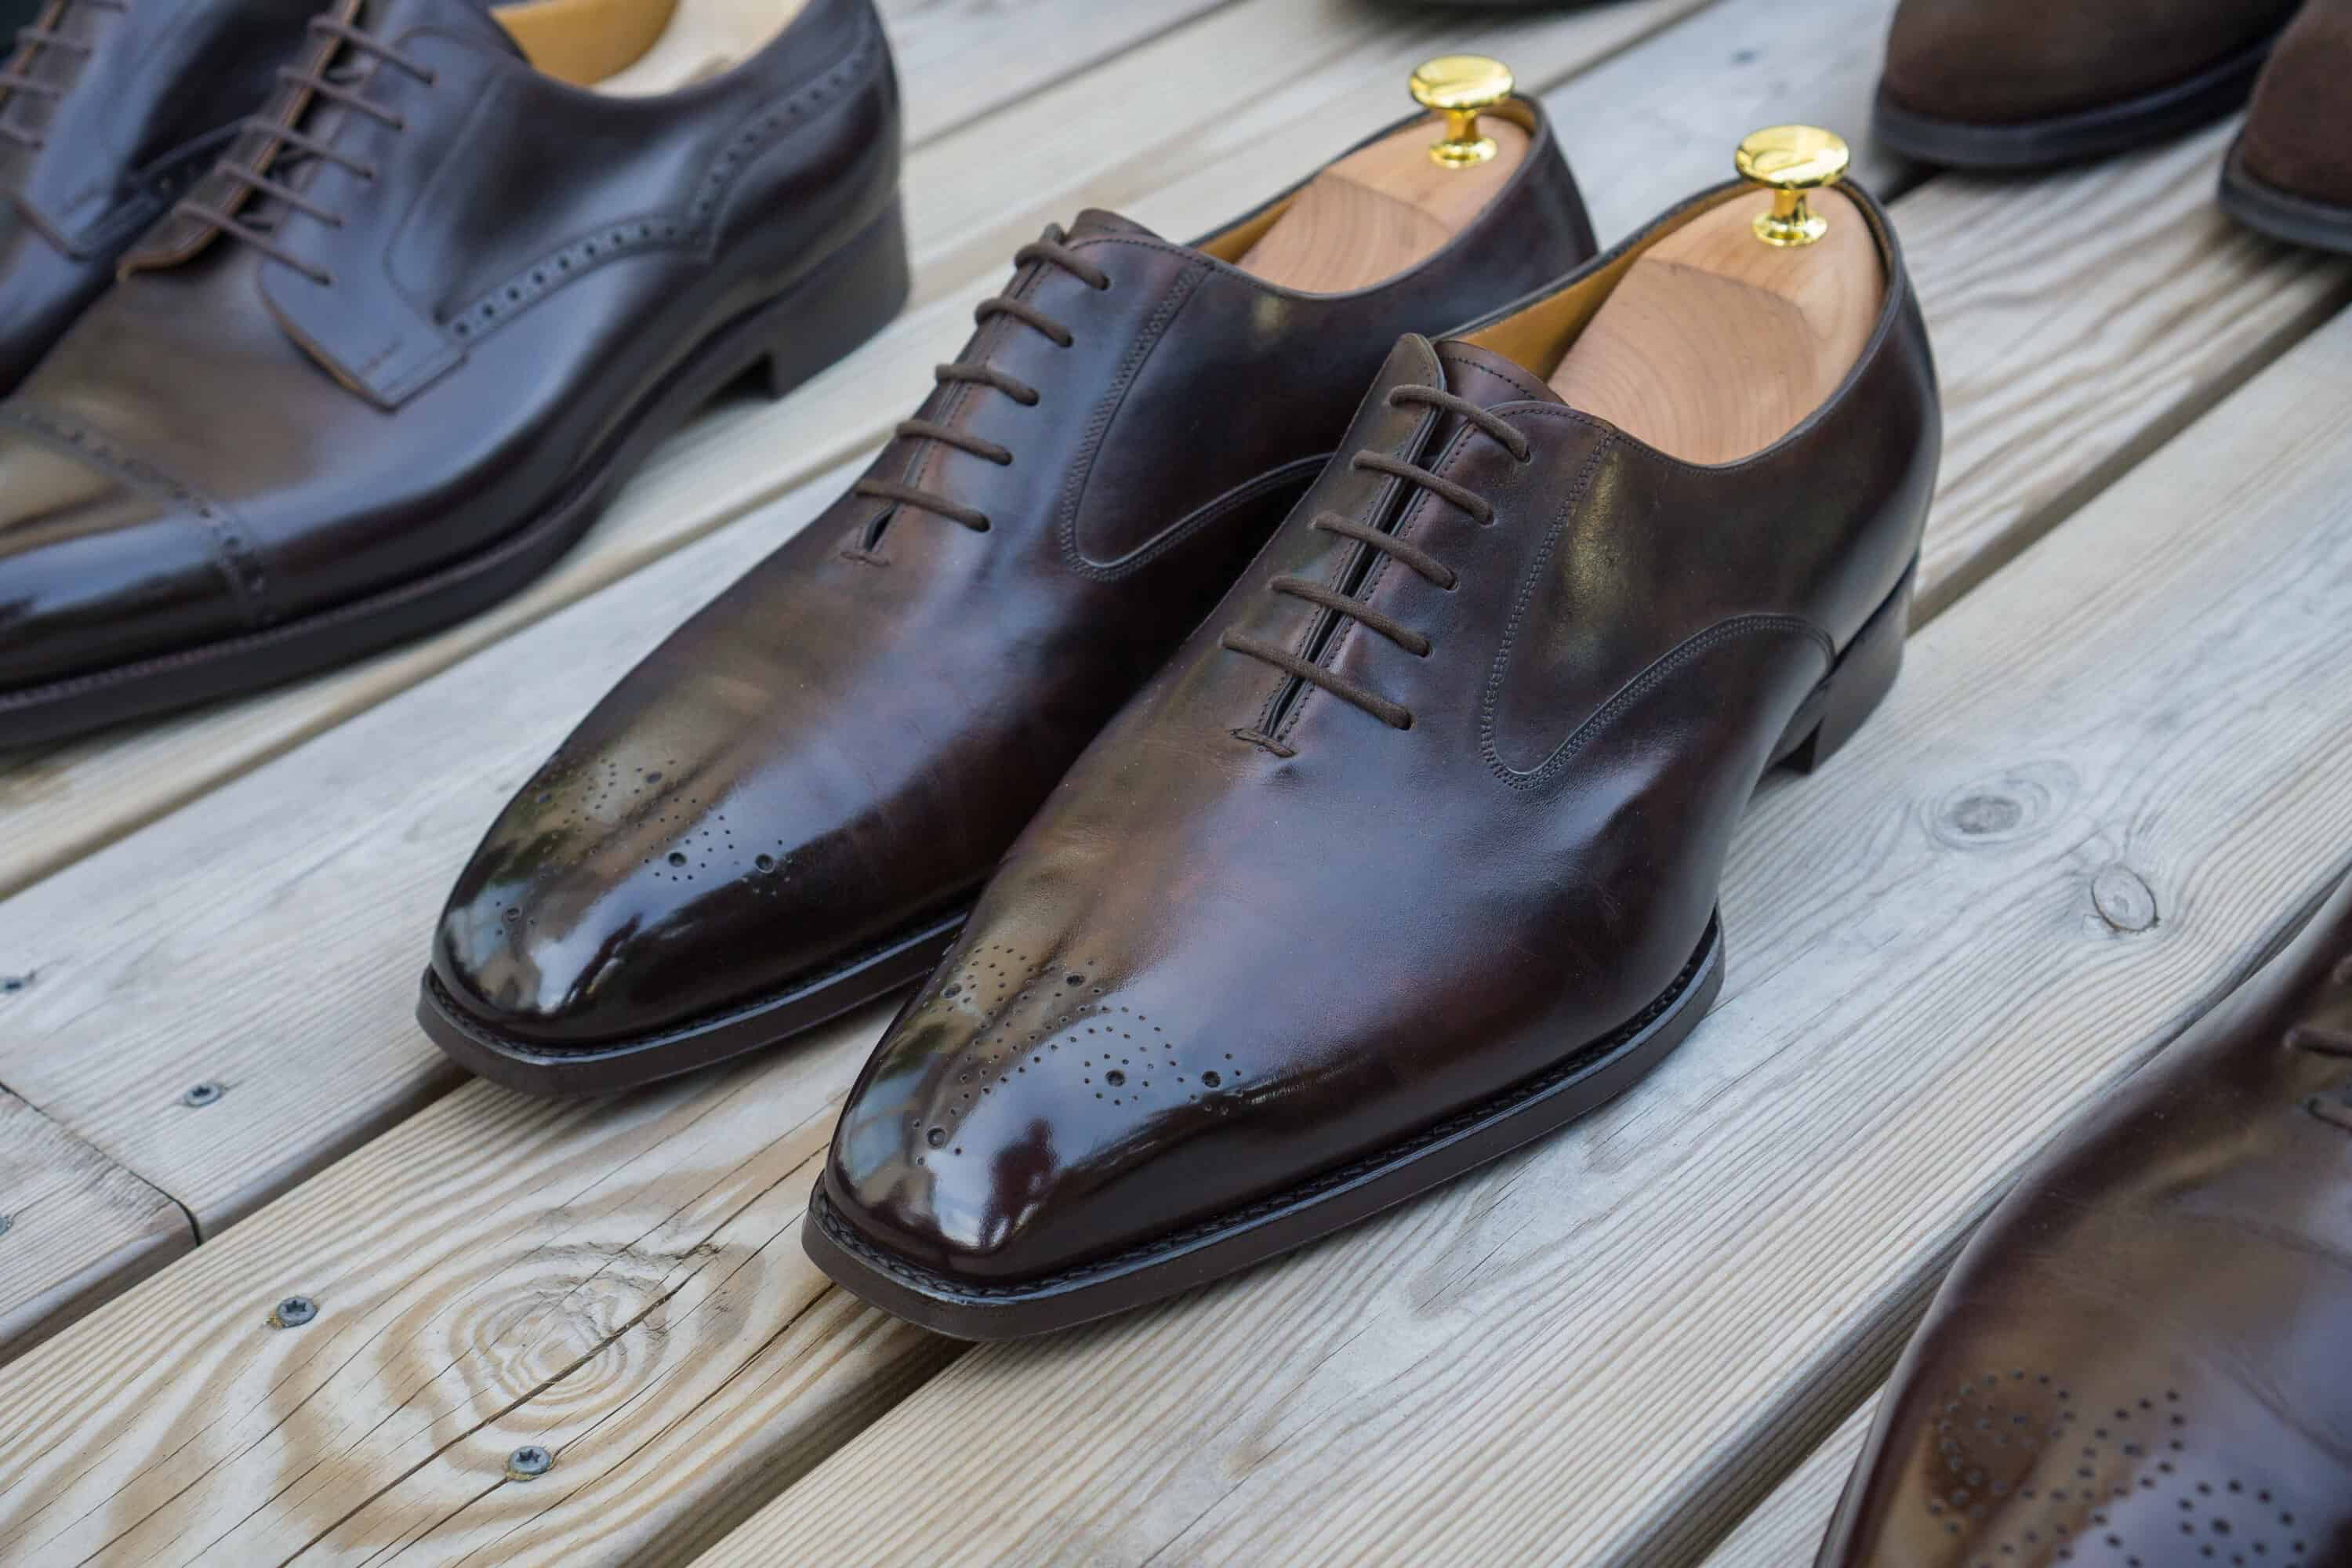 Guide – My shoe collection 5 –